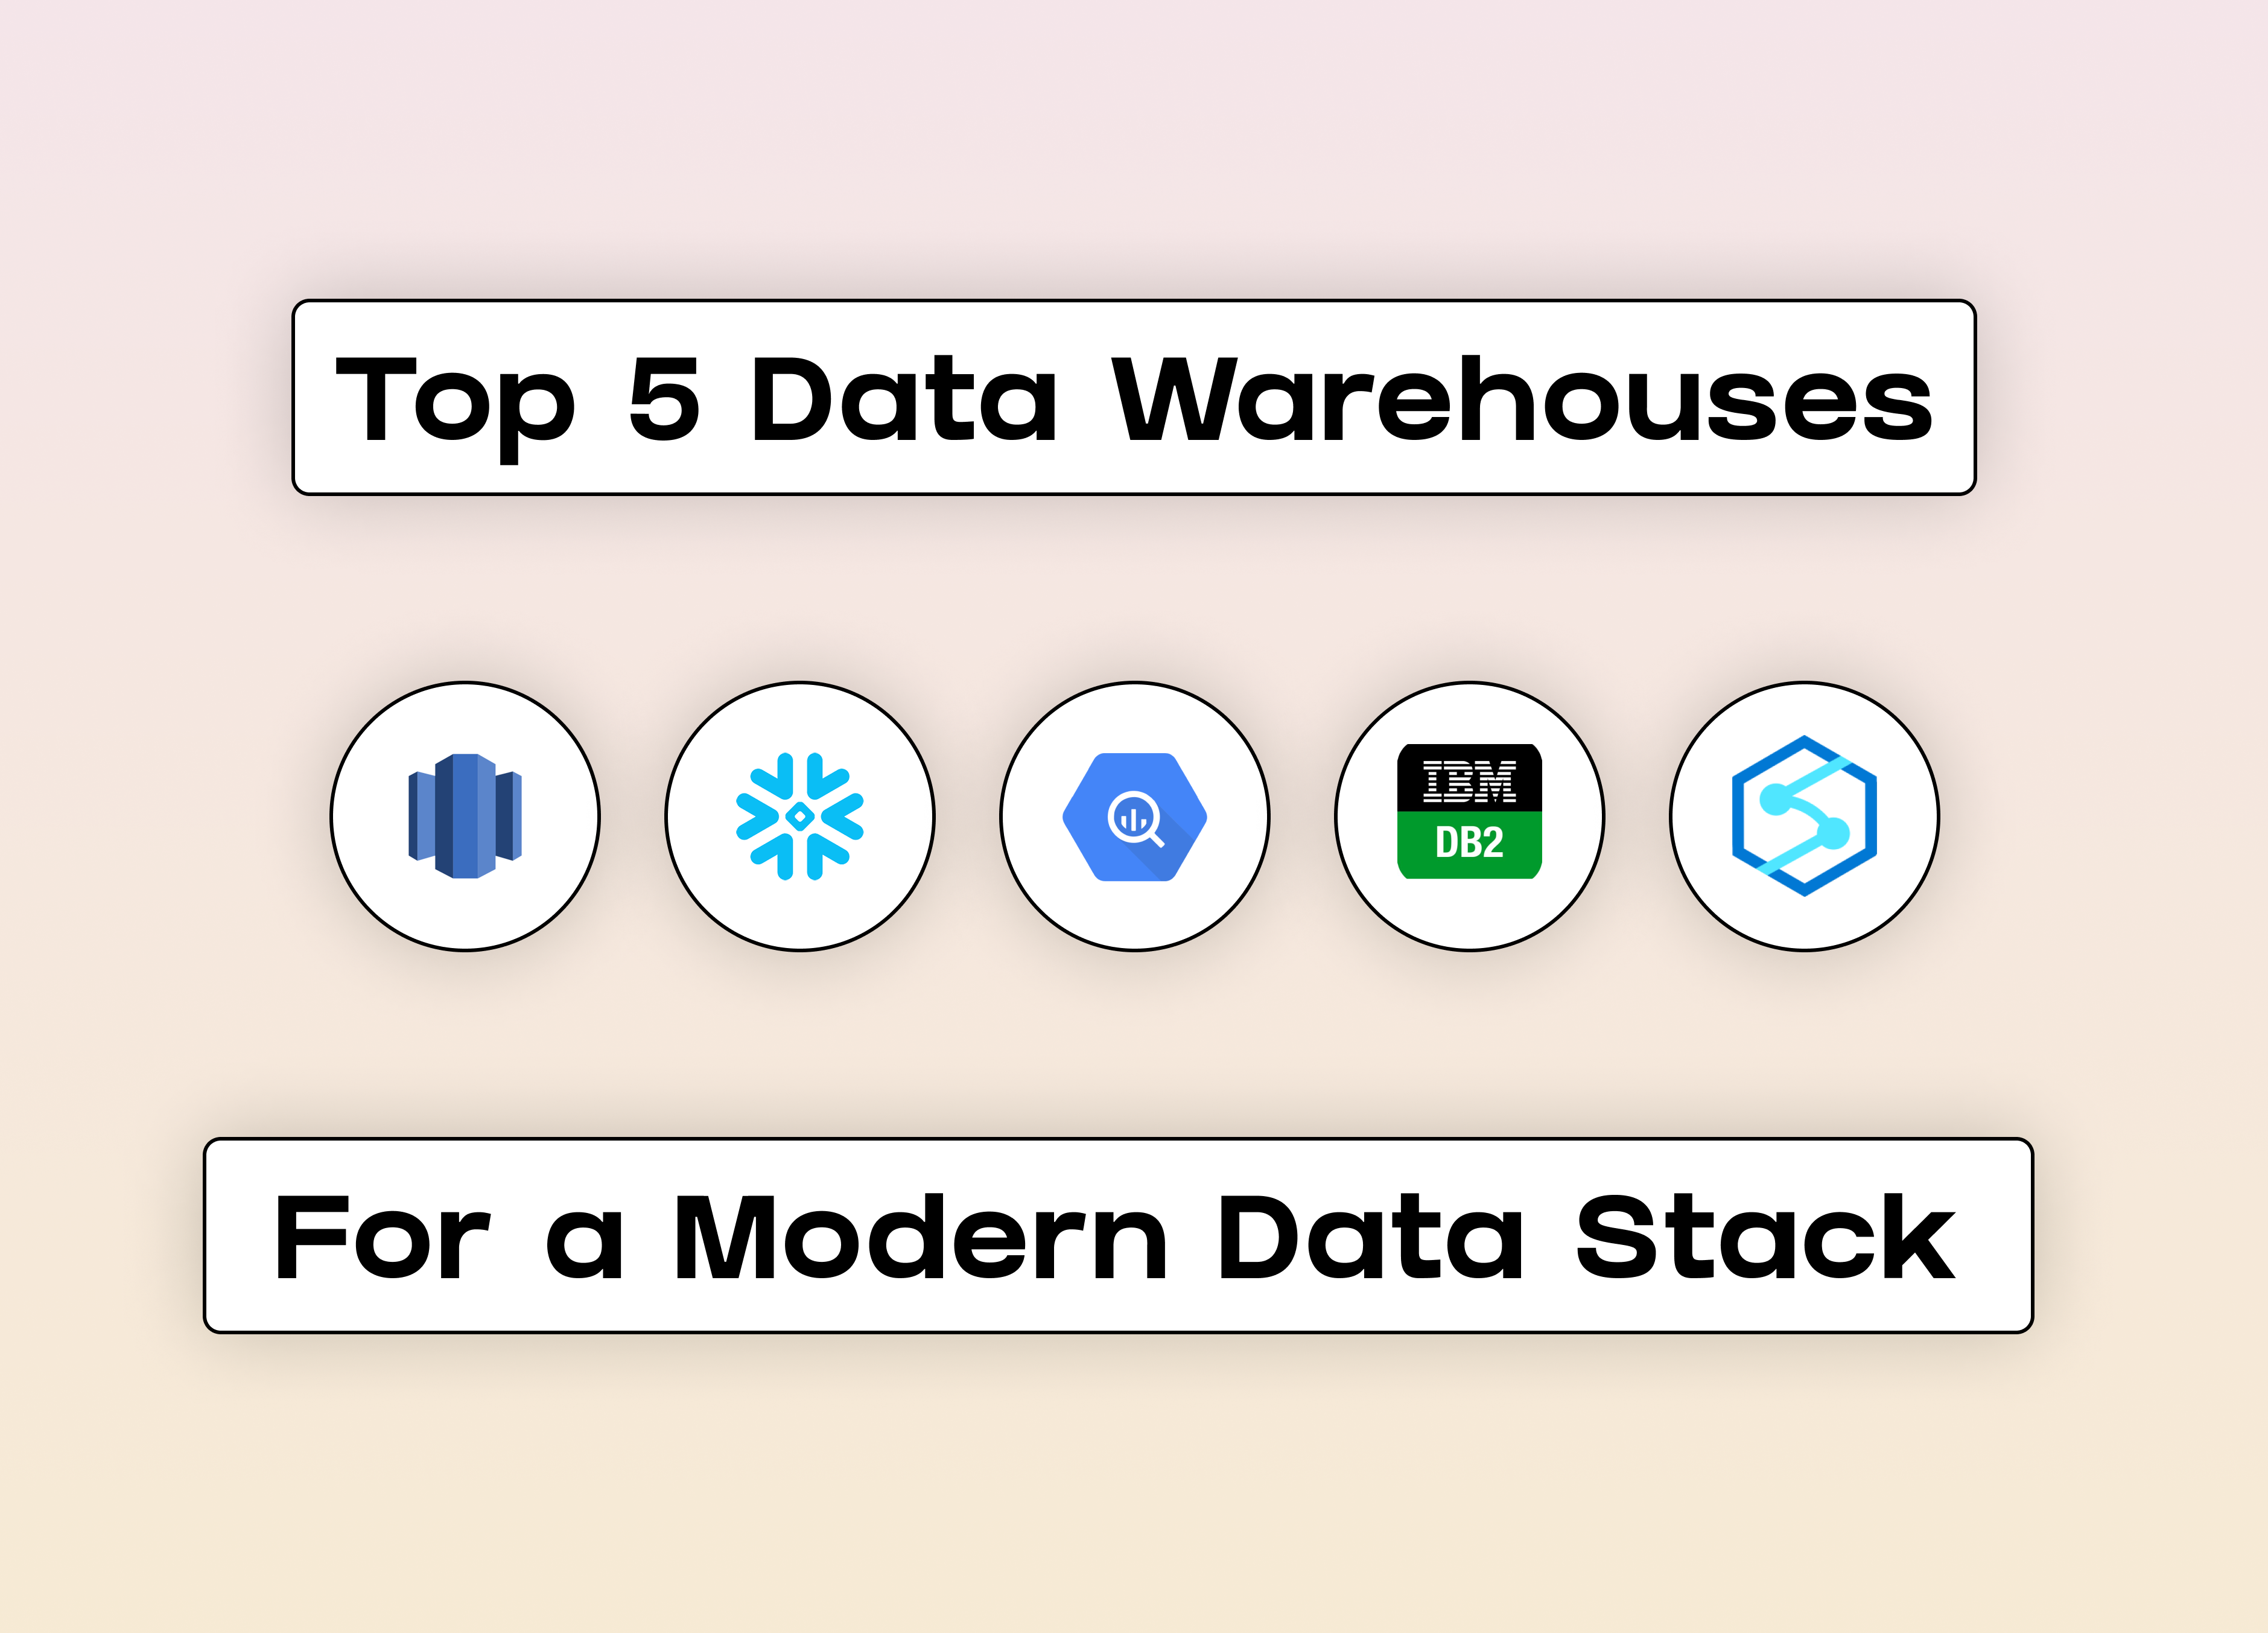 Top 5 Data Warehouses (and our Top Picks for a Modern Data Stack)